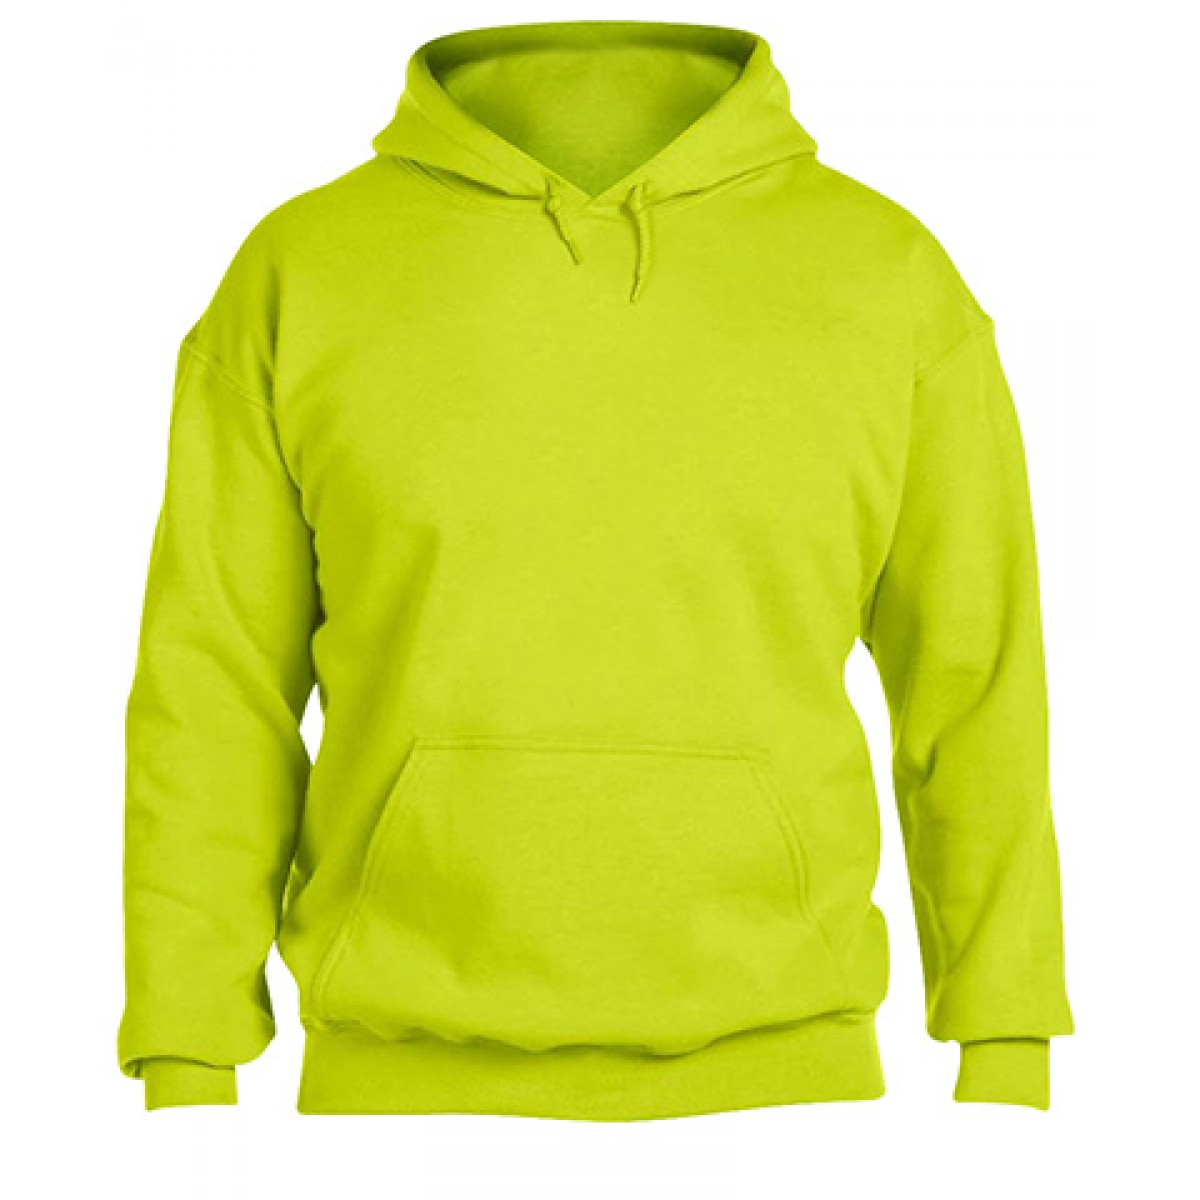 Hooded Sweatshirt 50/50 Heavy Blend-Safety Green-YS